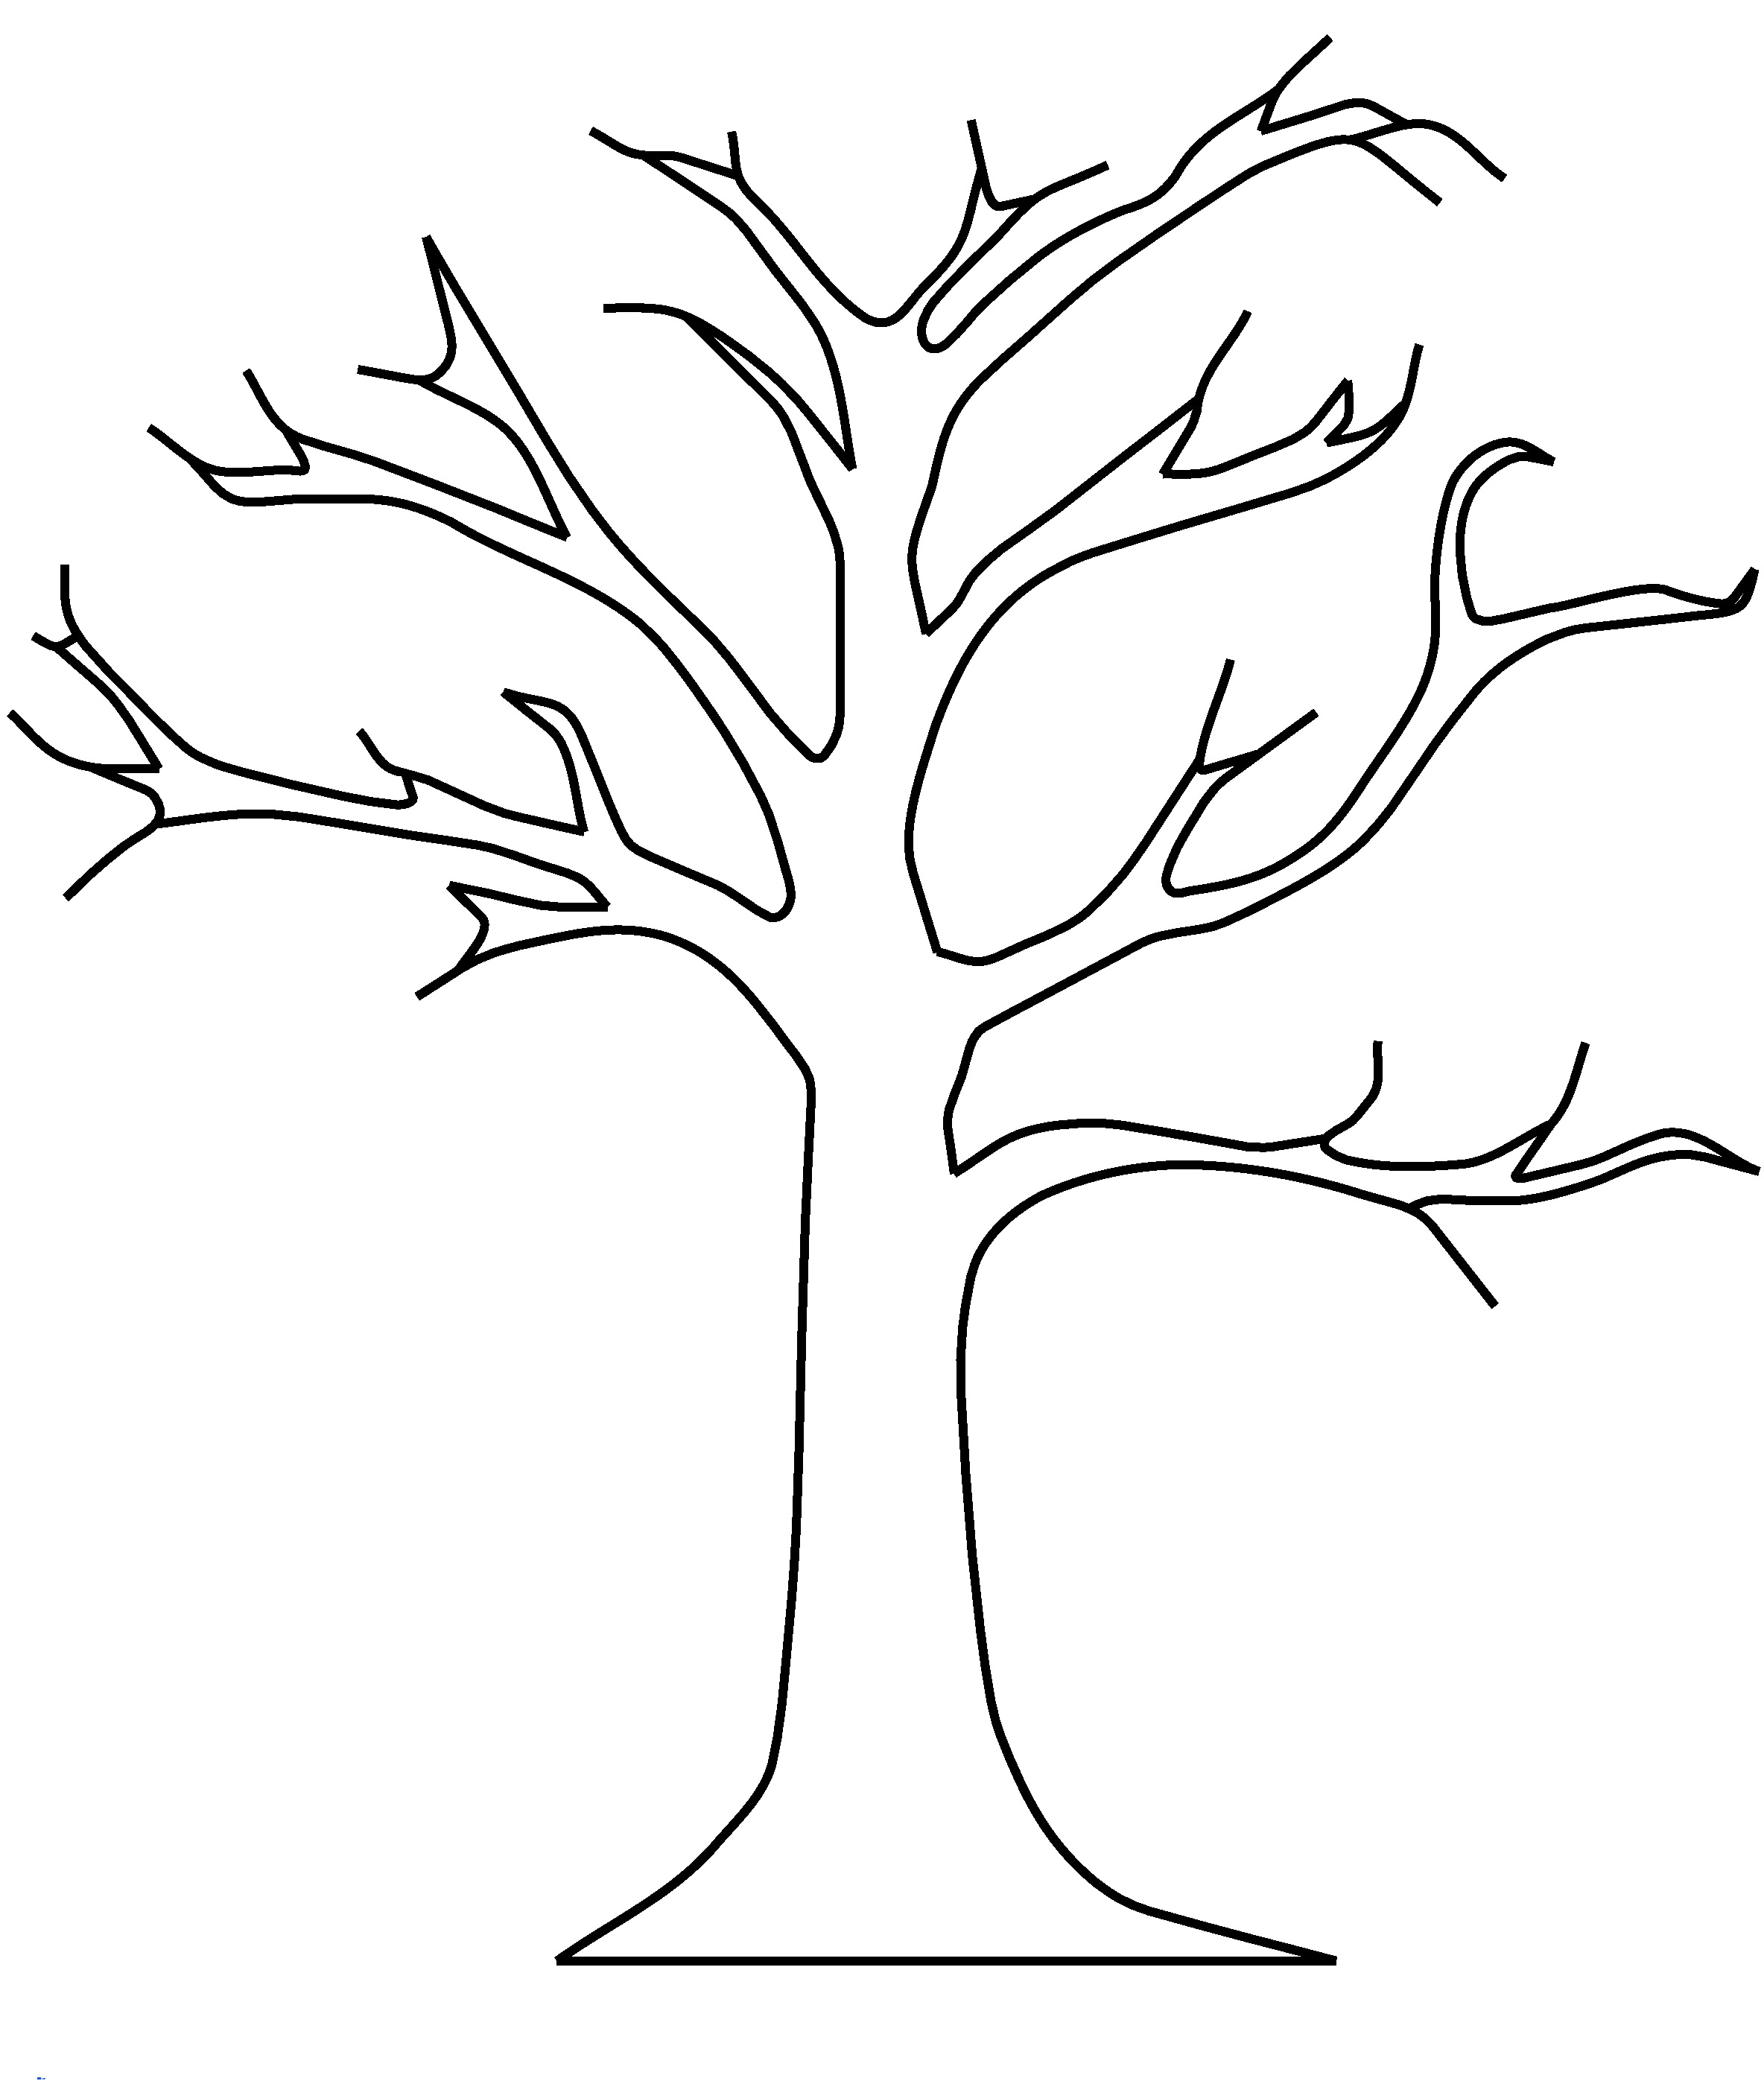 Free Leafless Tree Outline Printable, Download Free Clip Art, Free - Free Printable Tree Template